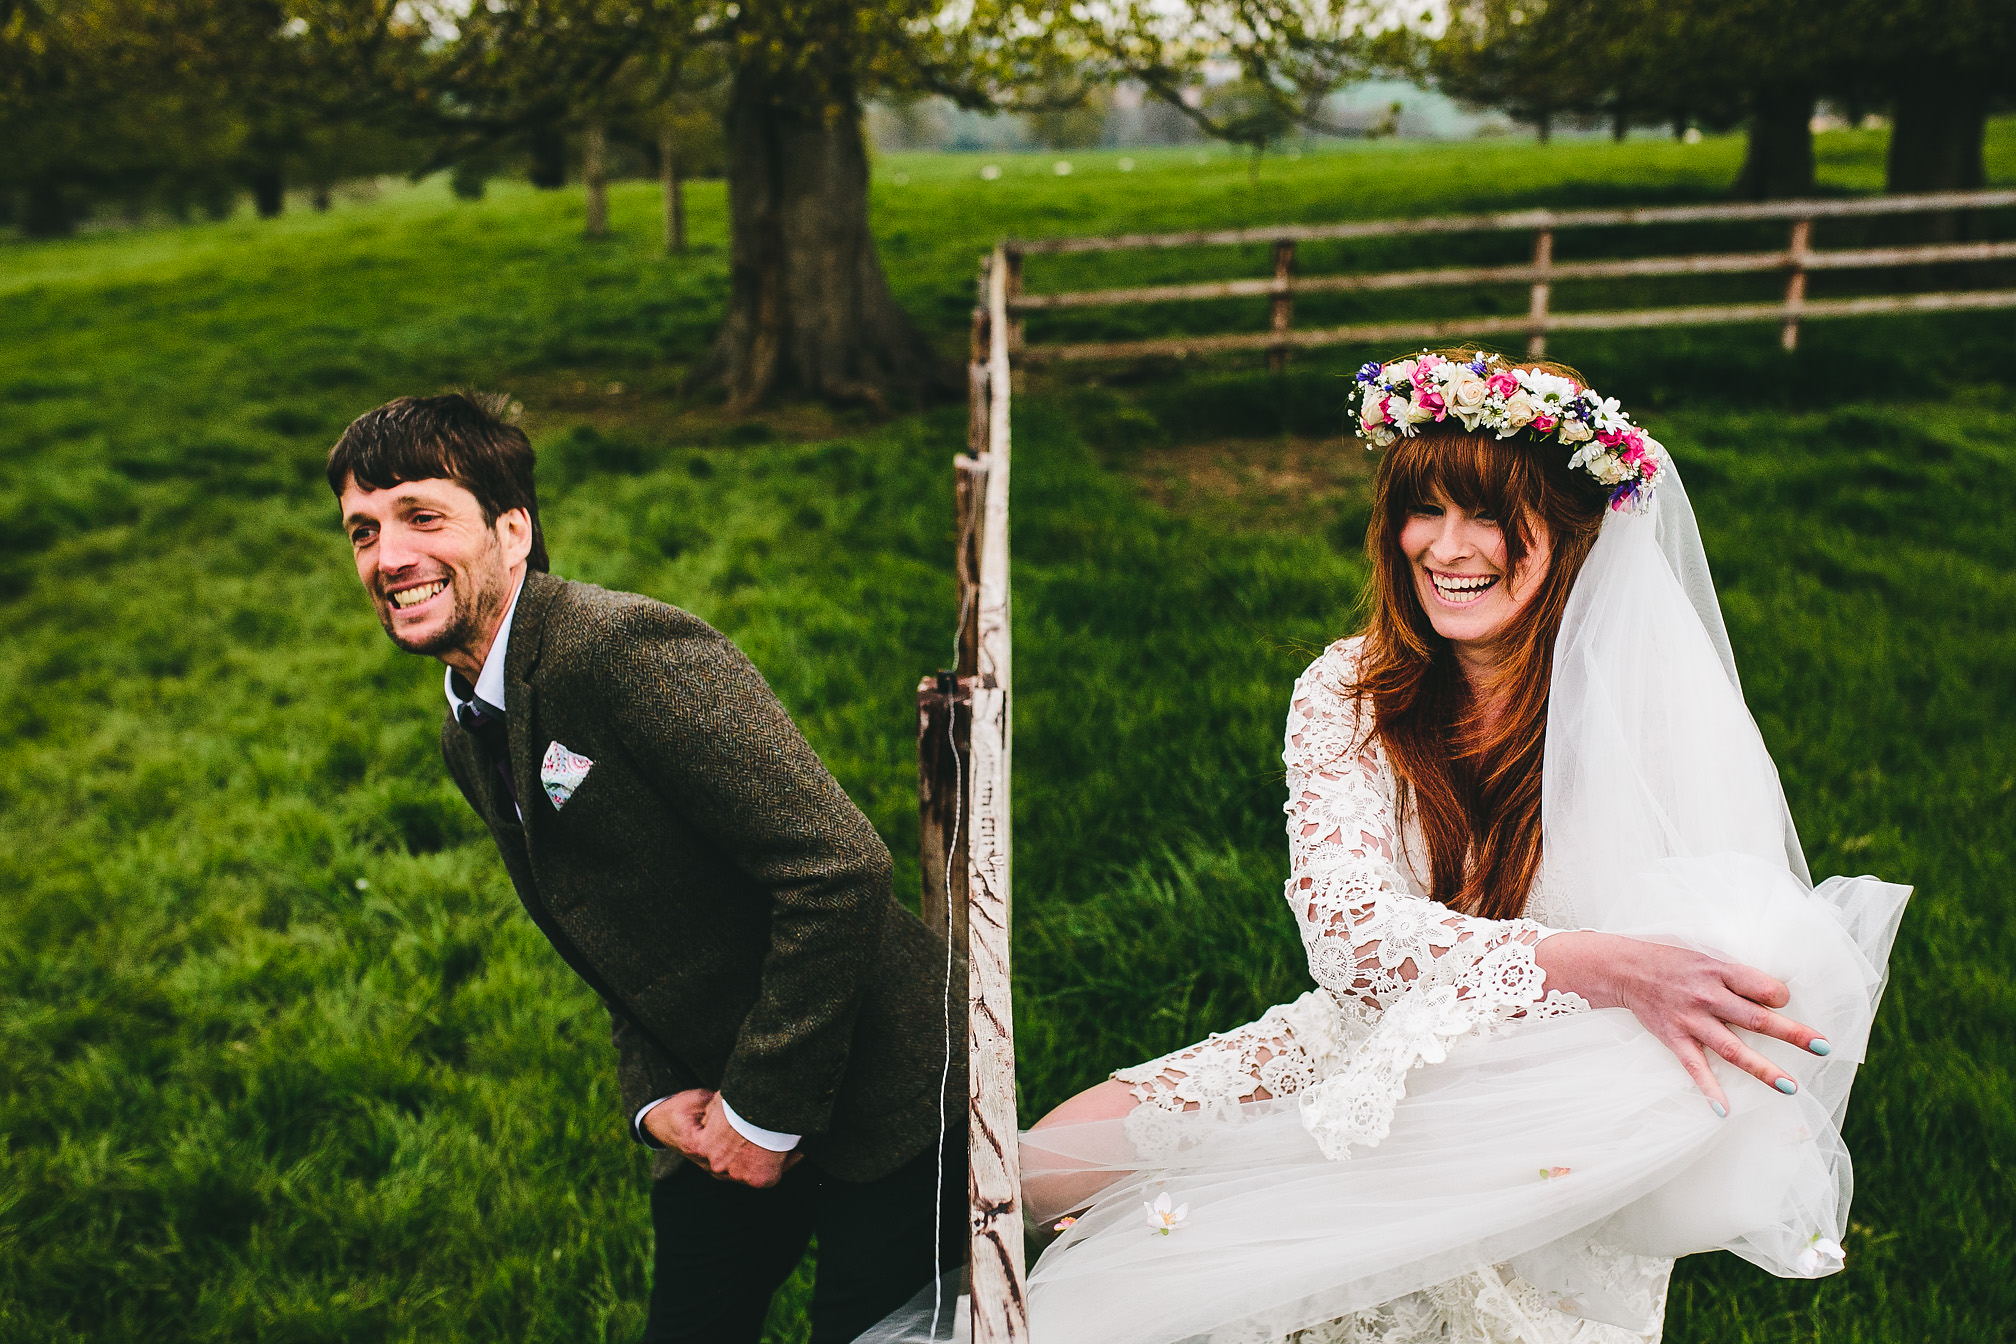 Countryside wedding fun